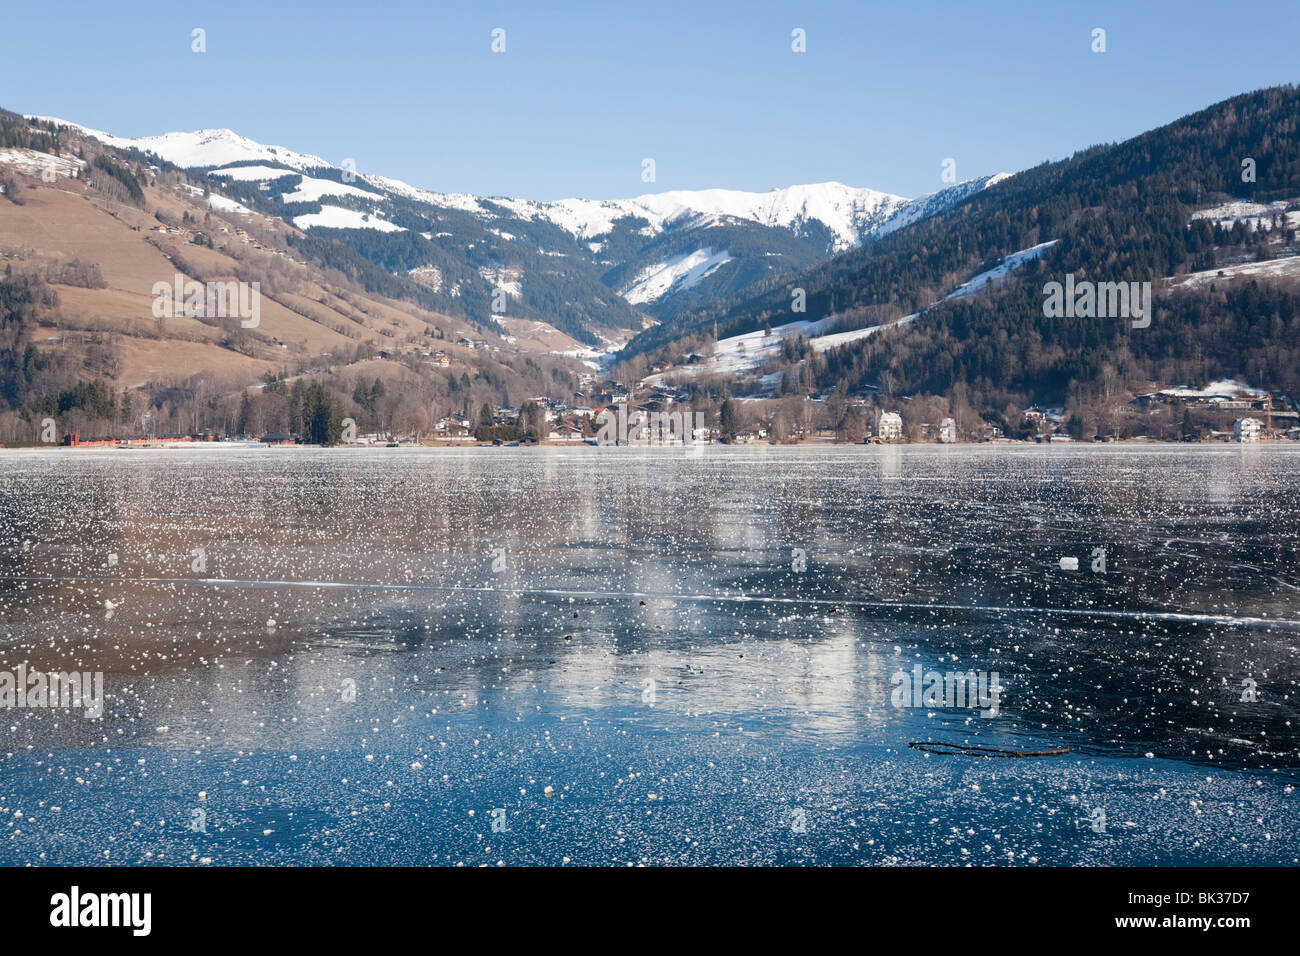 Frozen Zeller See lake with snow capped mountains reflected in ice in alpine resort. Zell am See, Austria, Europe - Stock Image